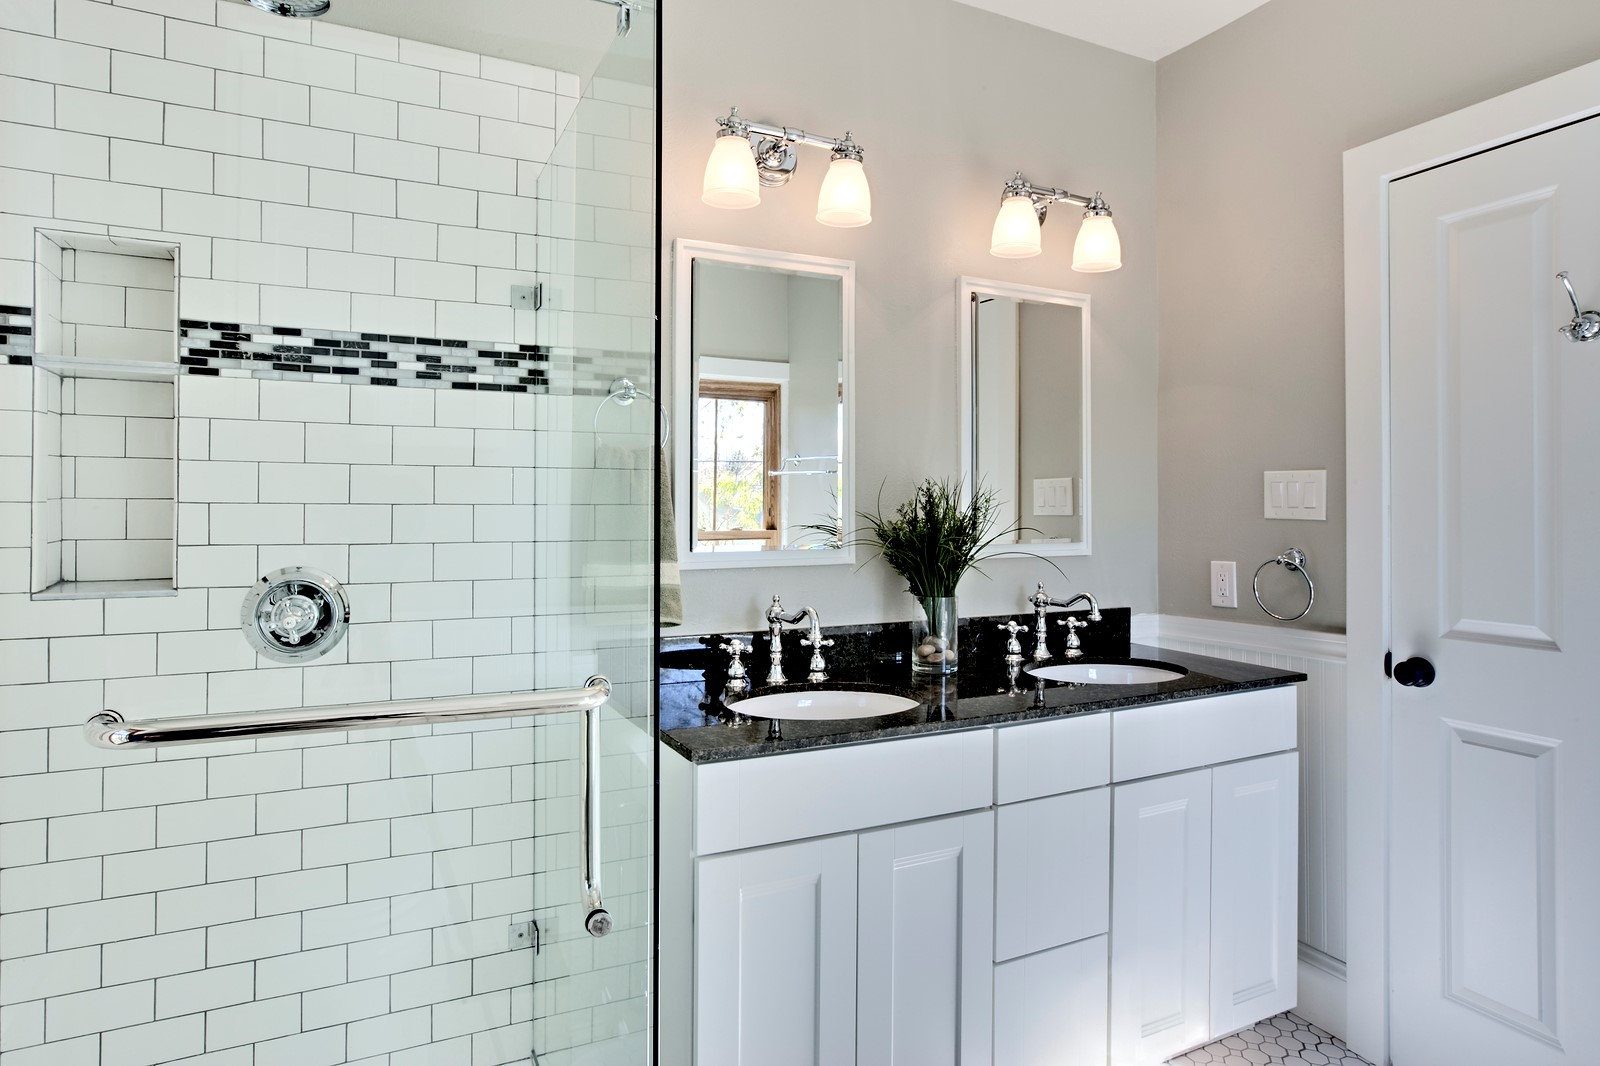 Quality Bathroom Renovations In Calgary Add Value To Basement Living